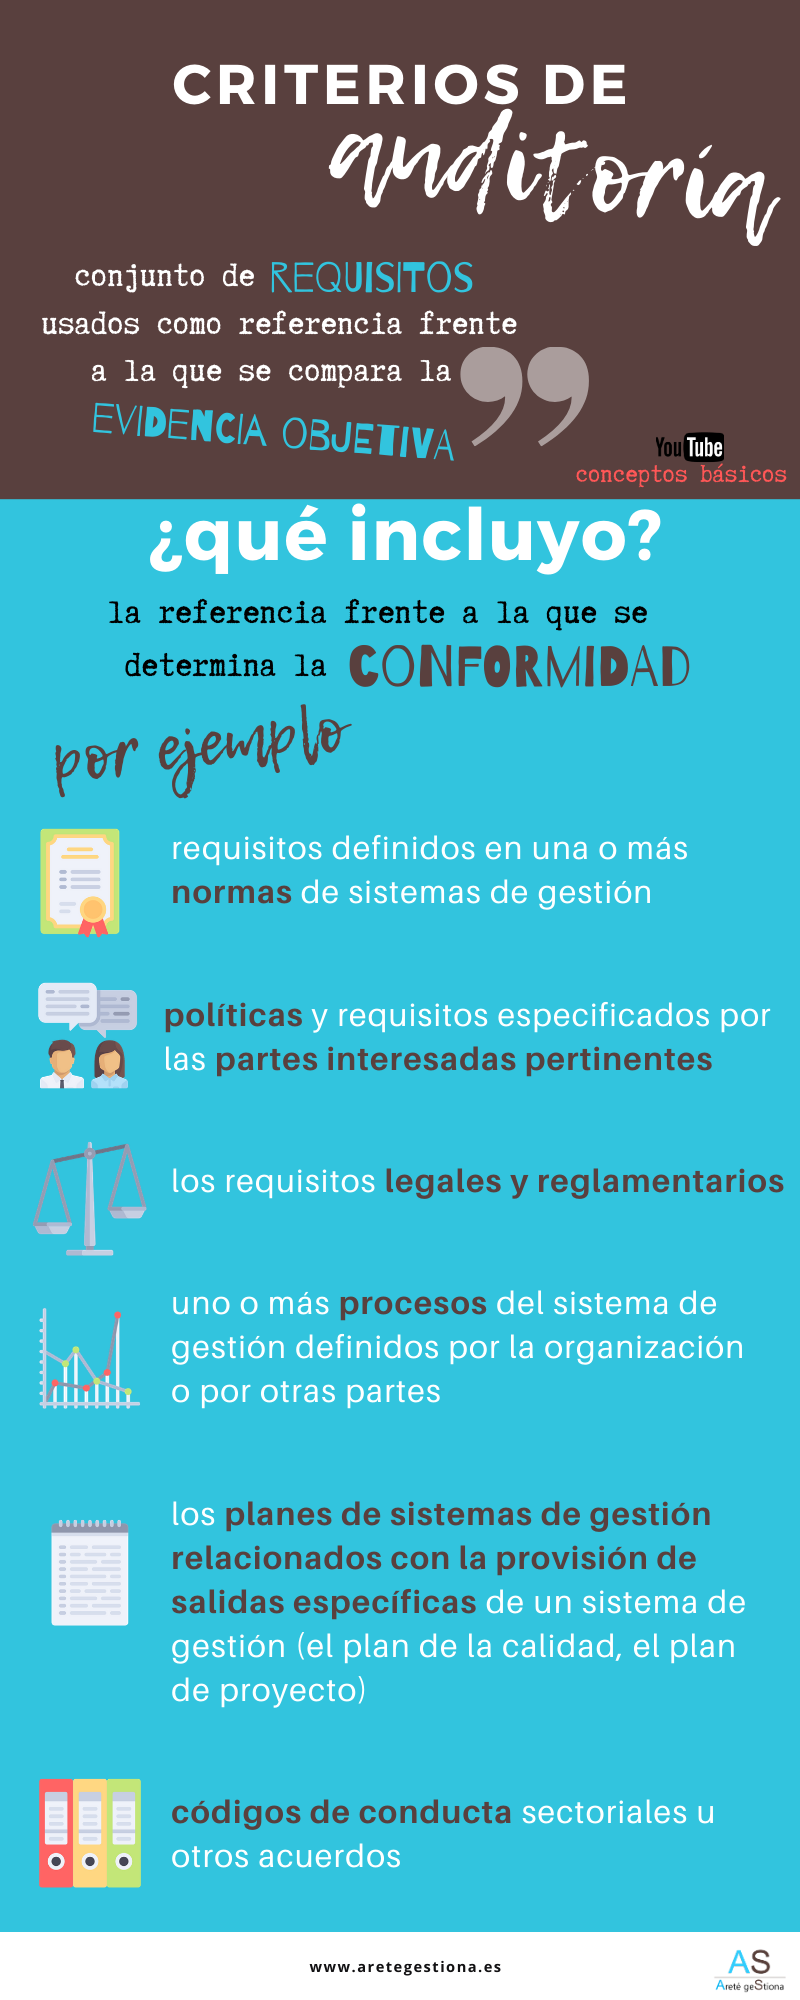 Infografia_Criterios_Auditoria